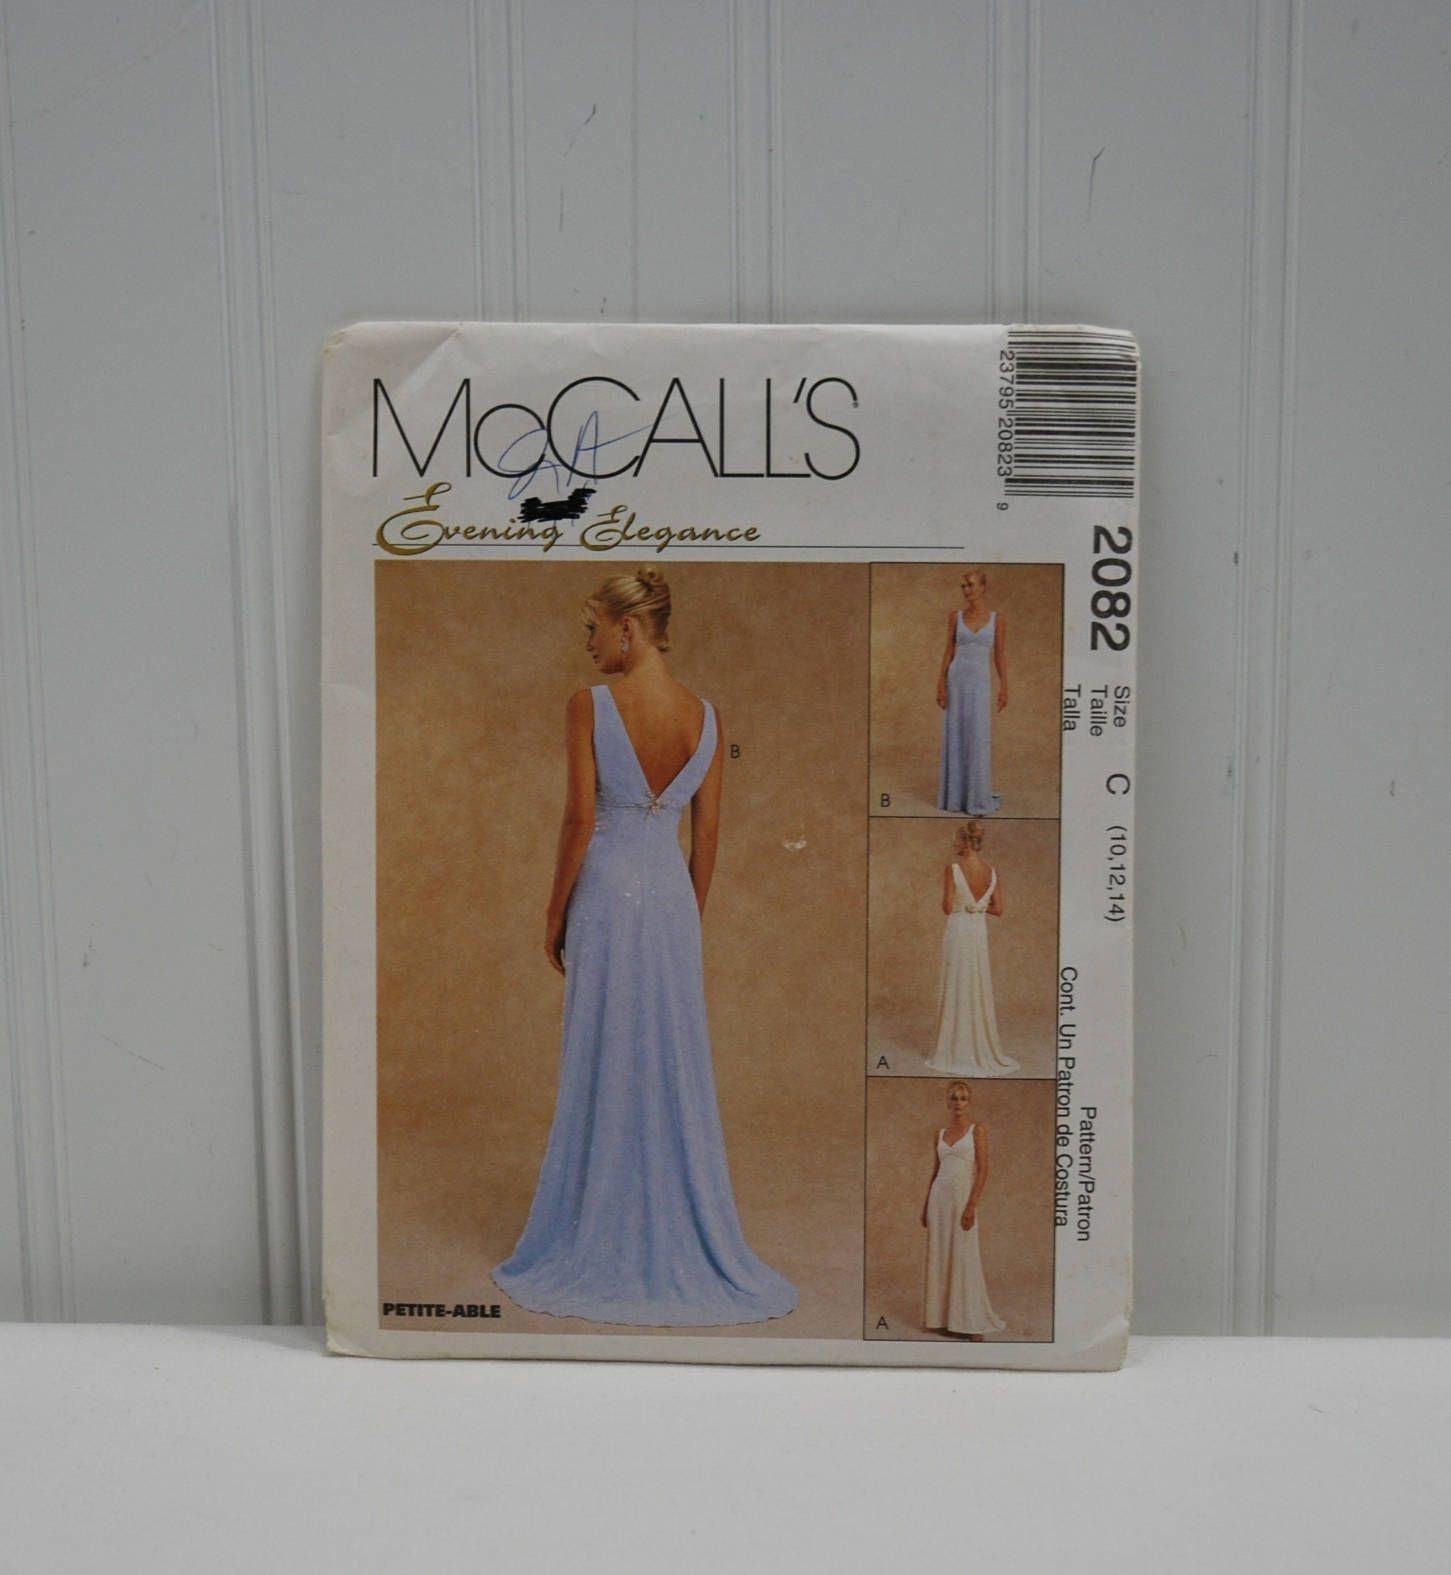 Mccall S 2082 Evening Elegance Formal Dress Sewing Etsy Sewing Dresses Womens Sewing Patterns Dress Sewing Pattern [ 1575 x 1451 Pixel ]